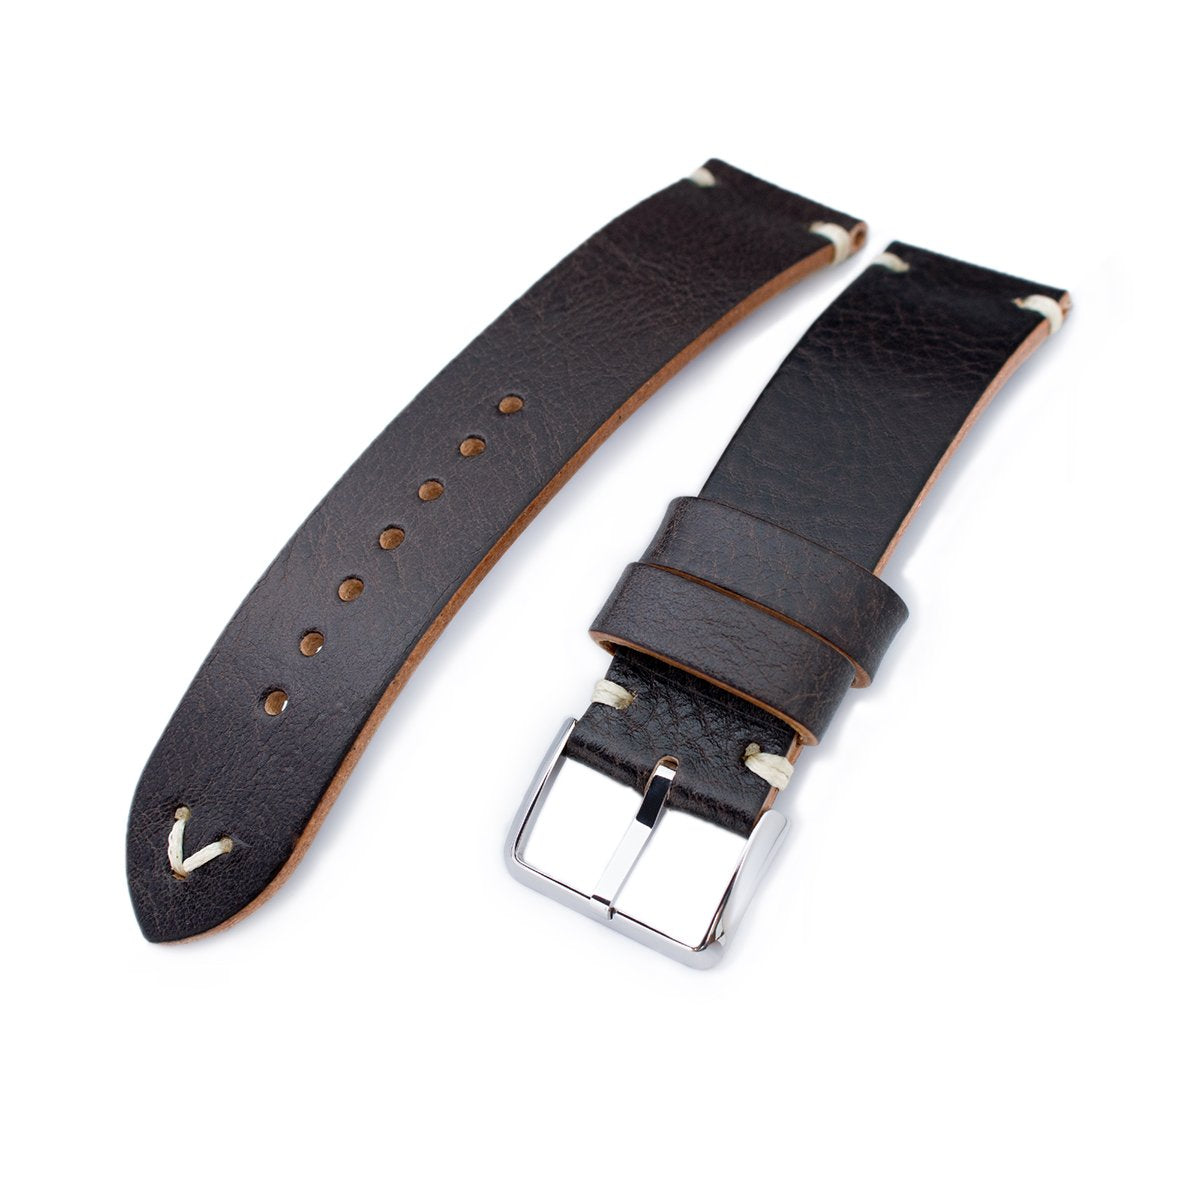 20mm 21mm 22mm MiLTAT Dark Brown Genuine Calf Leather Watch Strap Beige Stitching Polished Buckle Strapcode Watch Bands